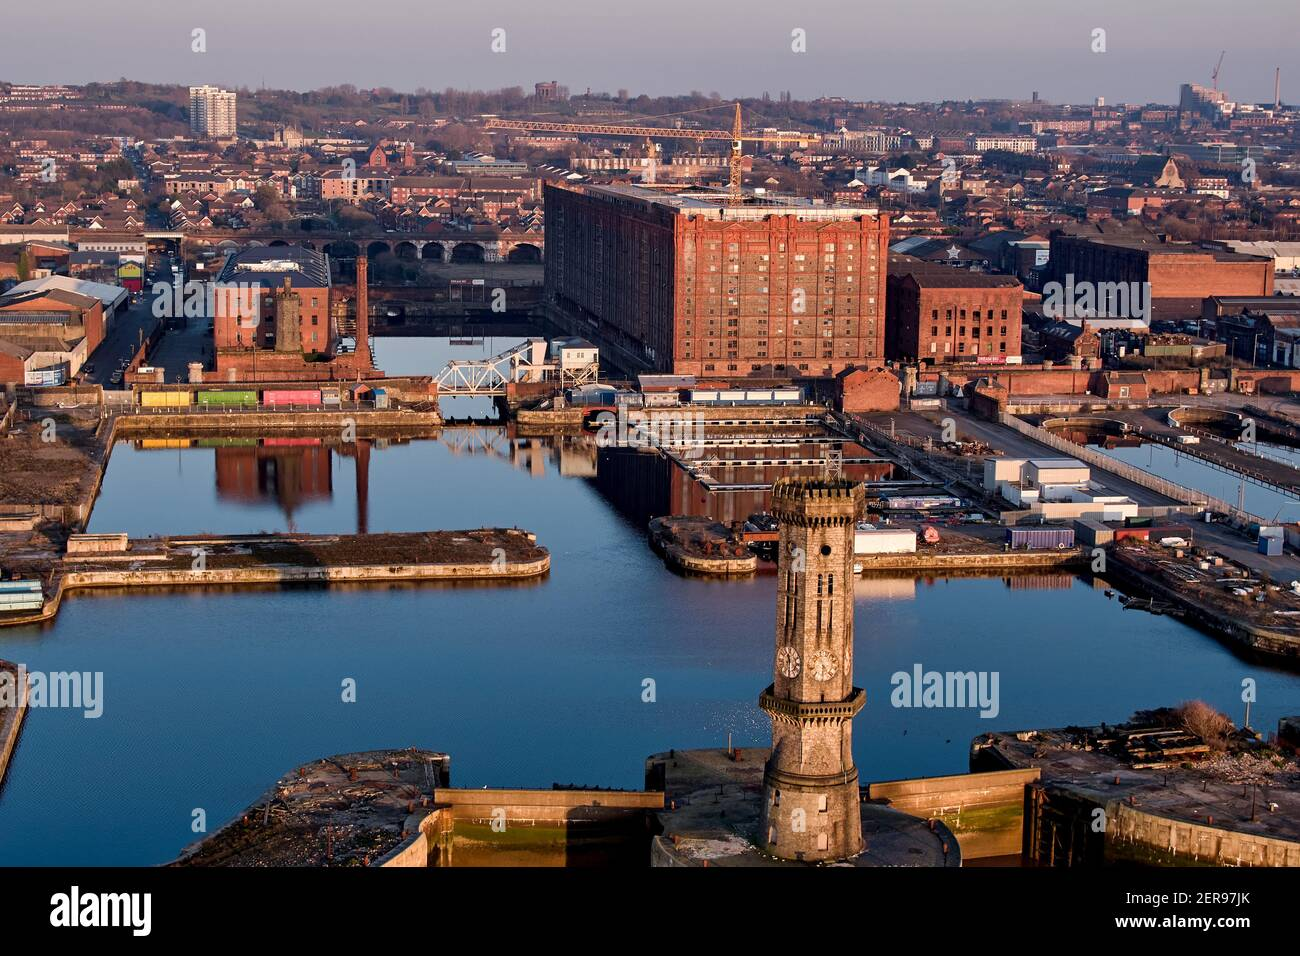 Tobacco Warehouse is a grade II listed building and is the world's largest brick warehouse. Constructed in 1901 standing 125 feet high in Stanley Dock Stock Photo